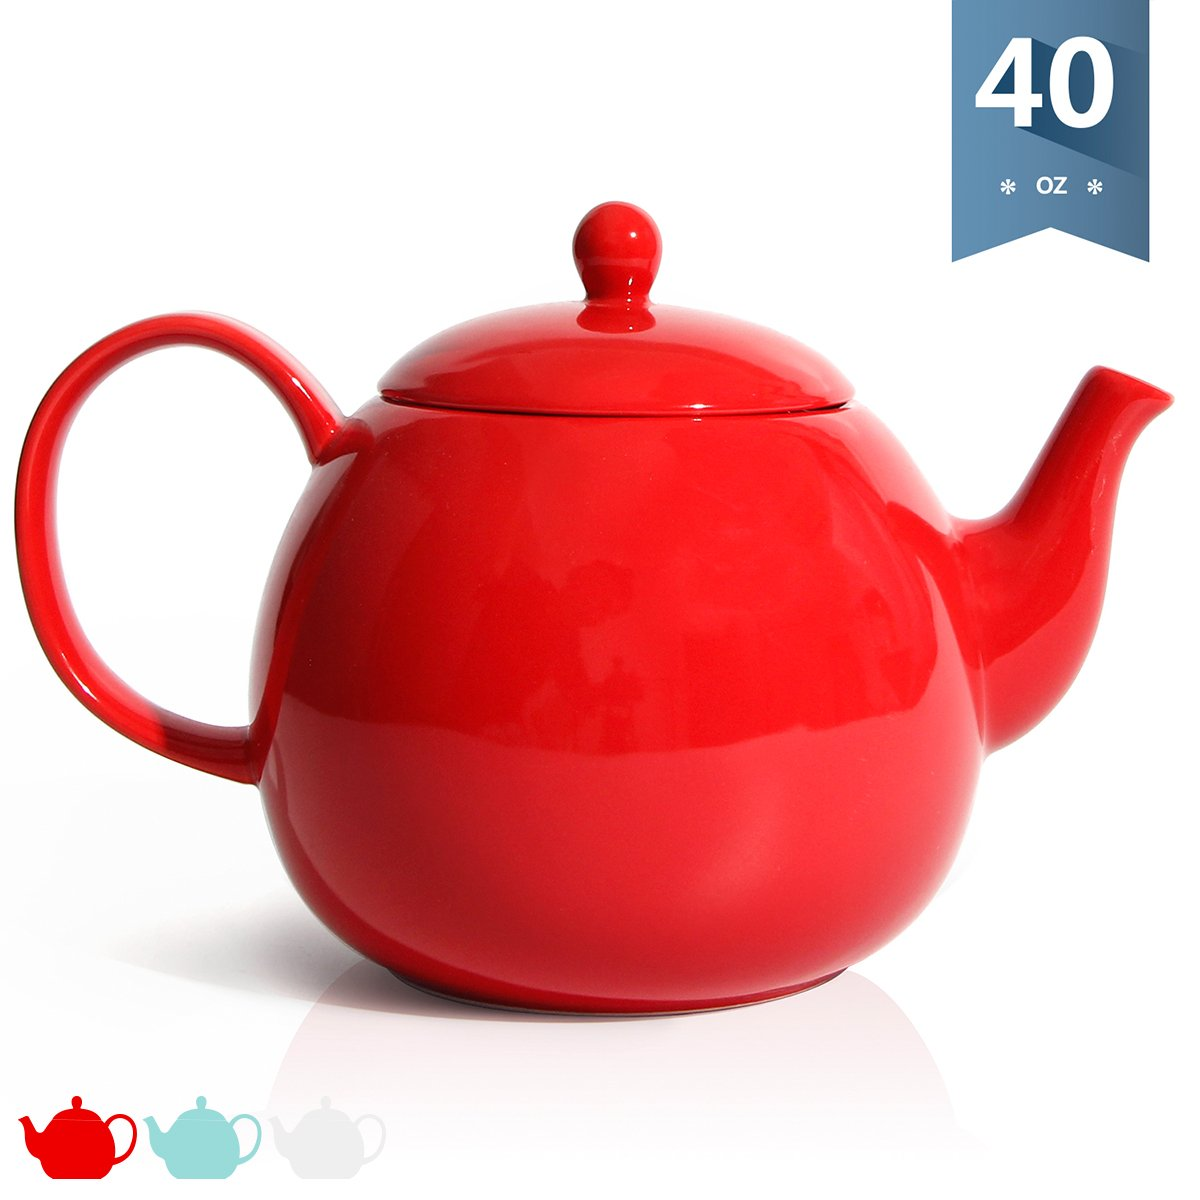 40 Ounce Tea Pot Sweese 2312 Porcelain Teapot Red Large Enough for 5 Cups